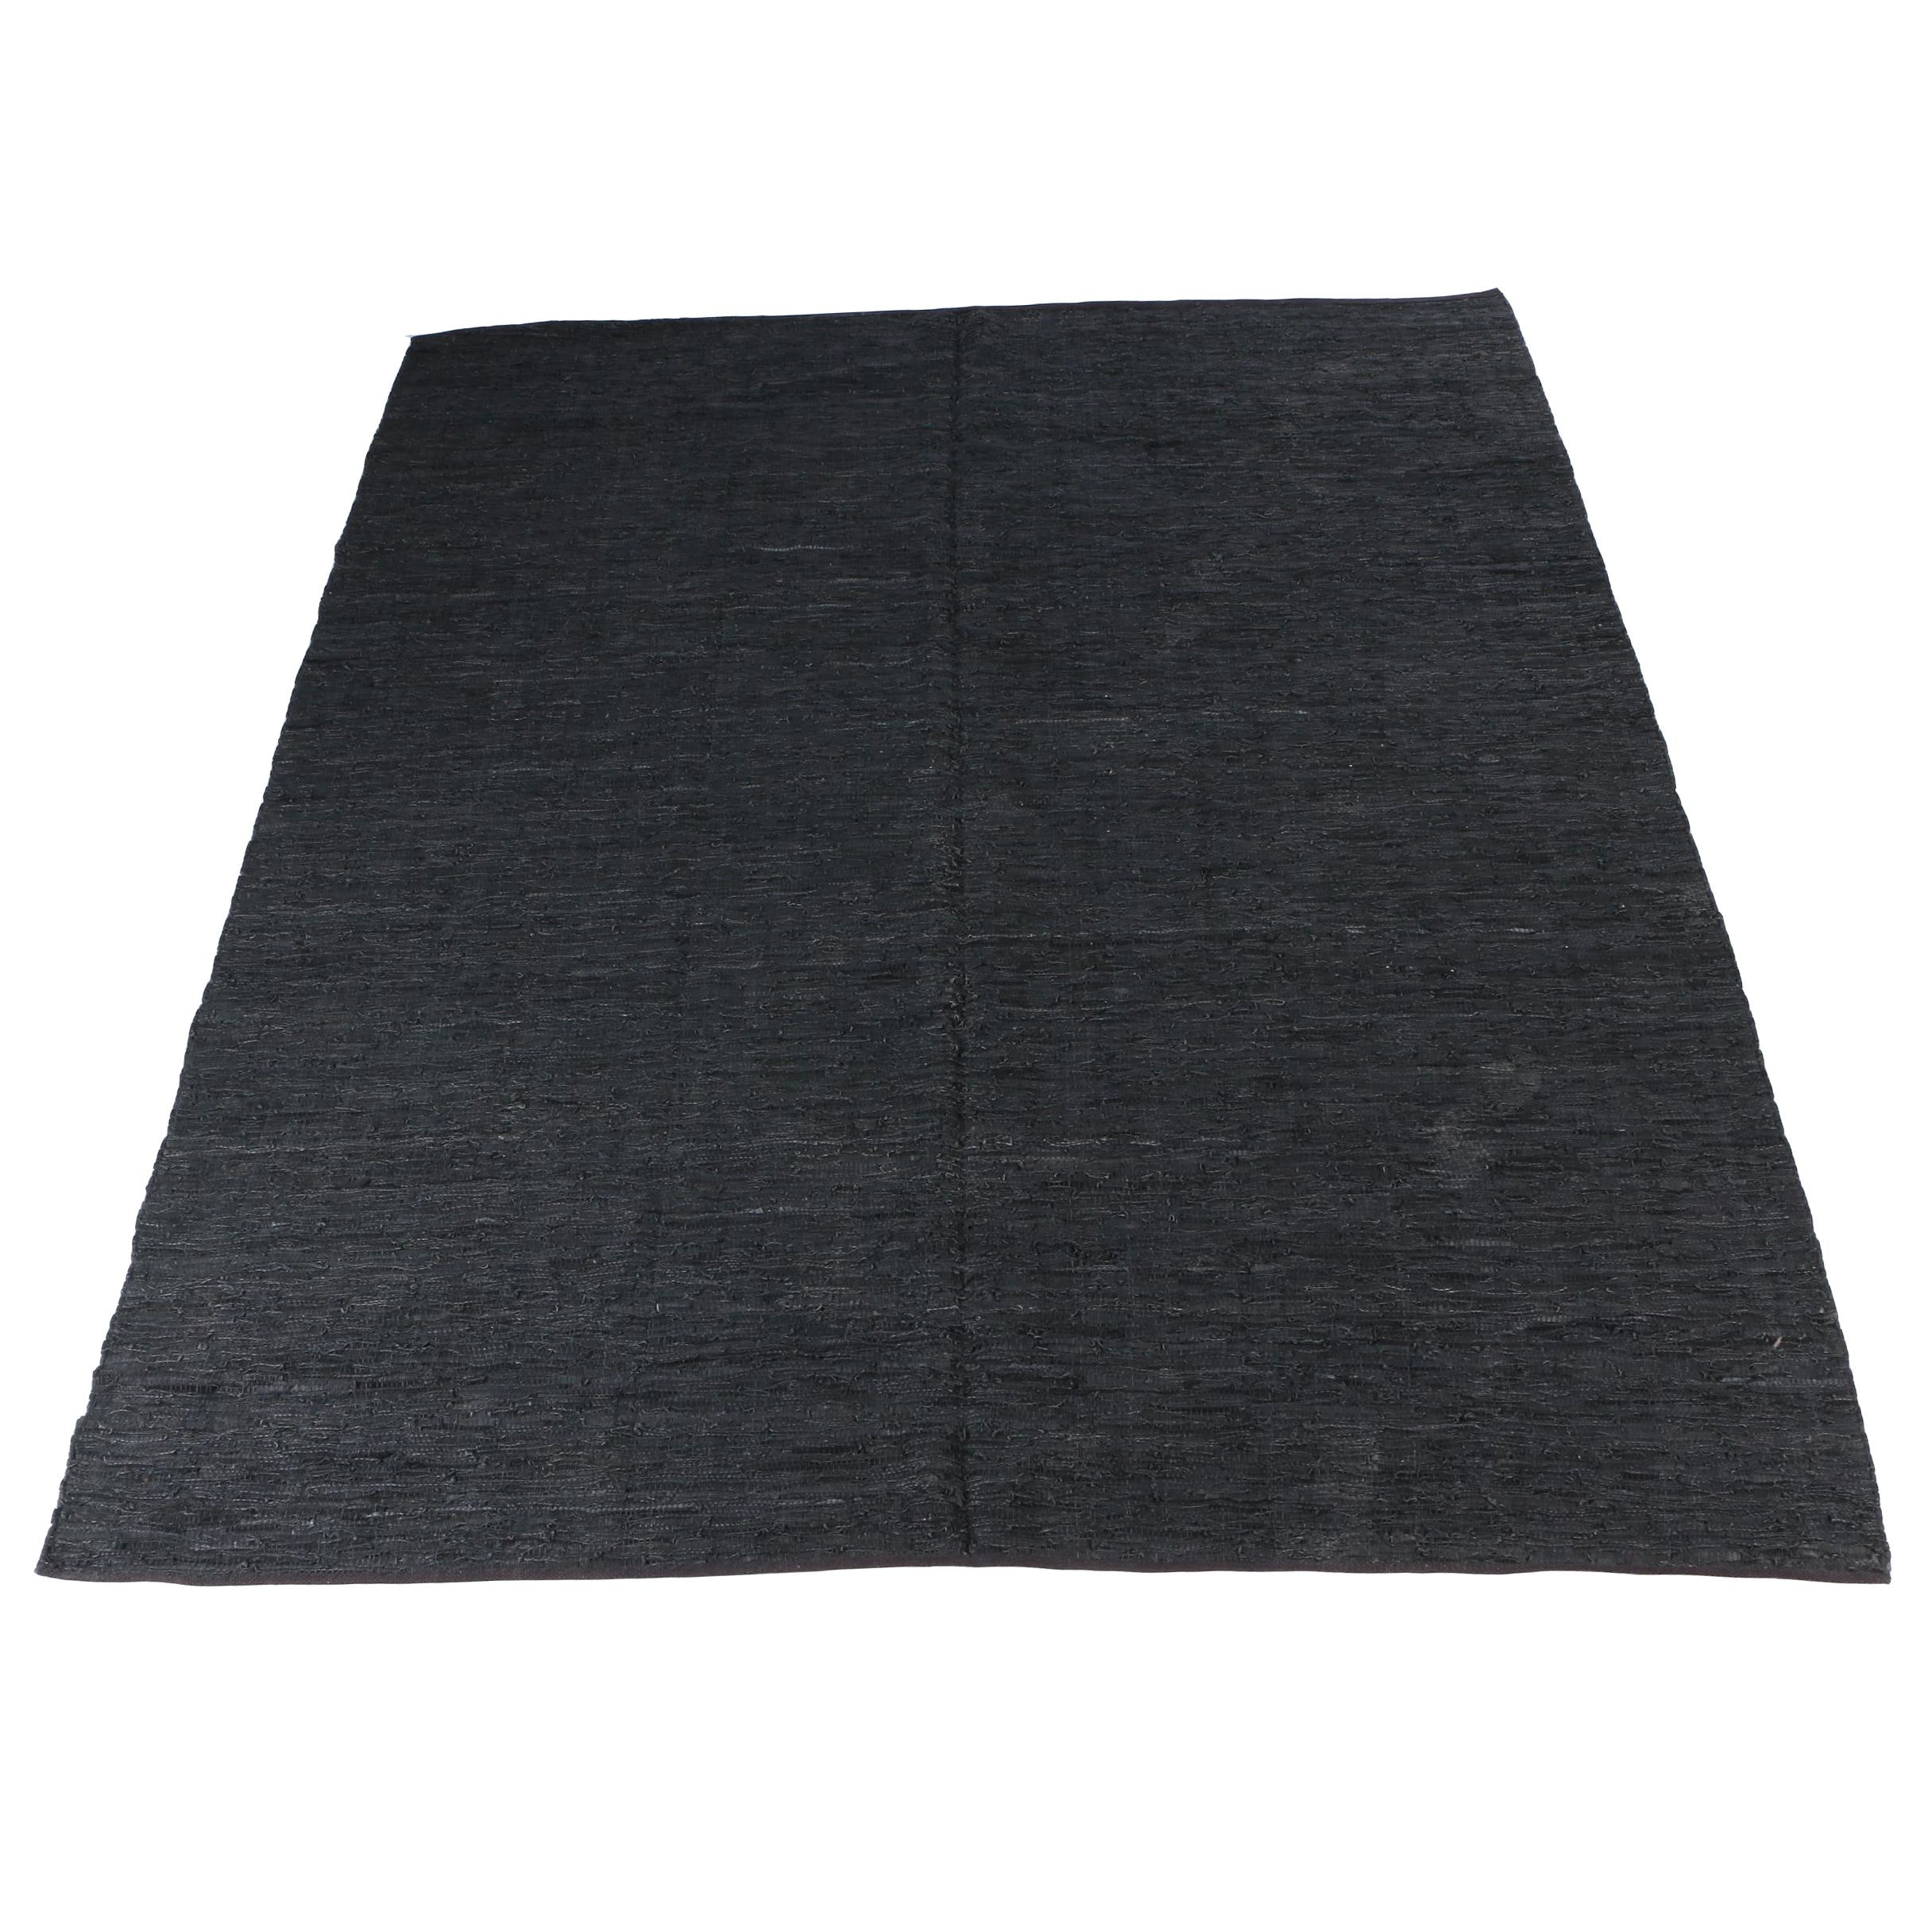 Handwoven Chindi Leather Area Rug